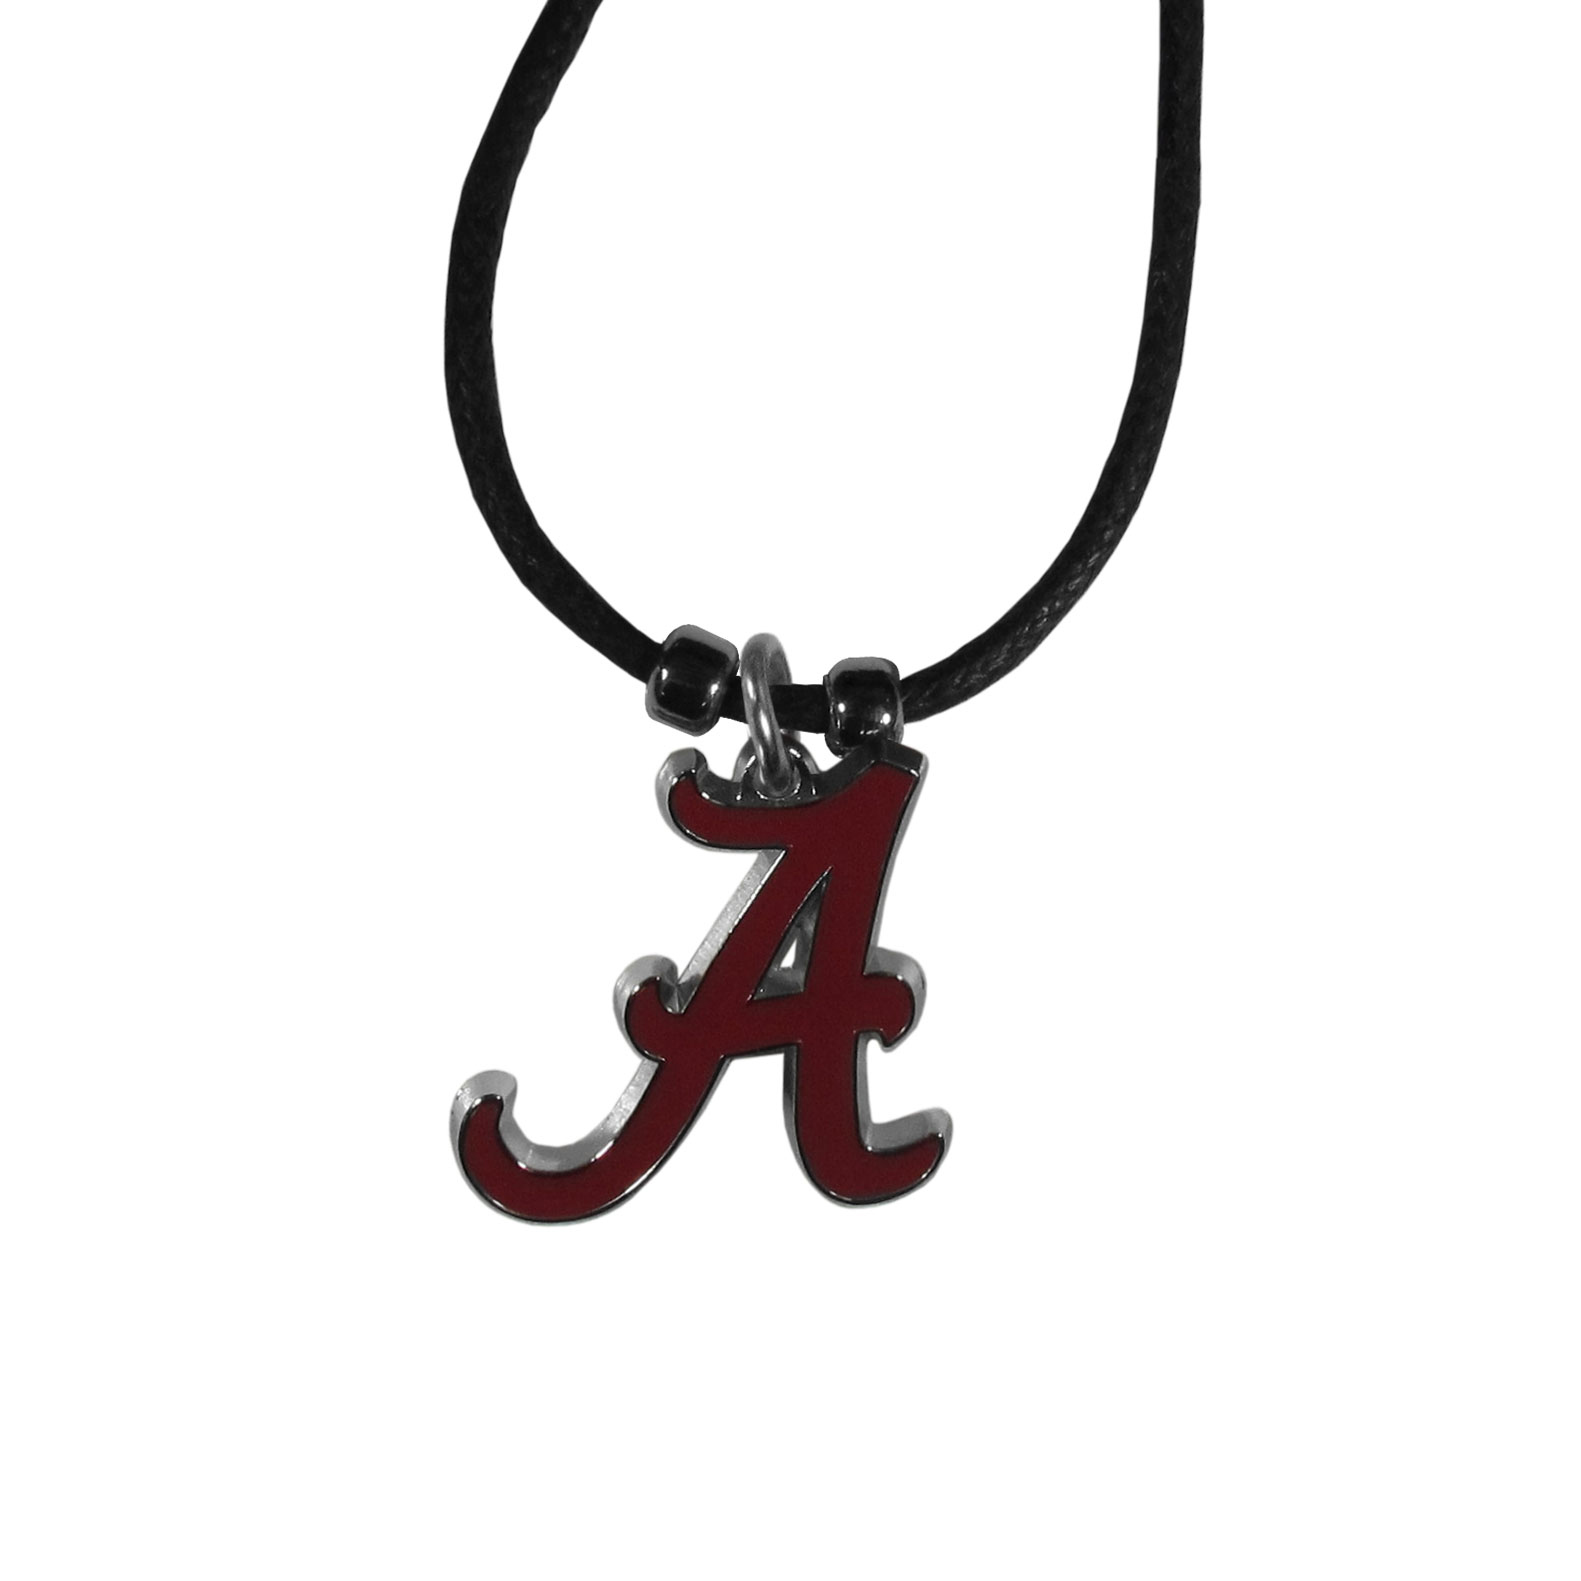 Alabama Crimson Tide Cord Necklace - This classic style cotton cord necklace features an extra large Alabama Crimson Tide pendant on a 21 inch cord.